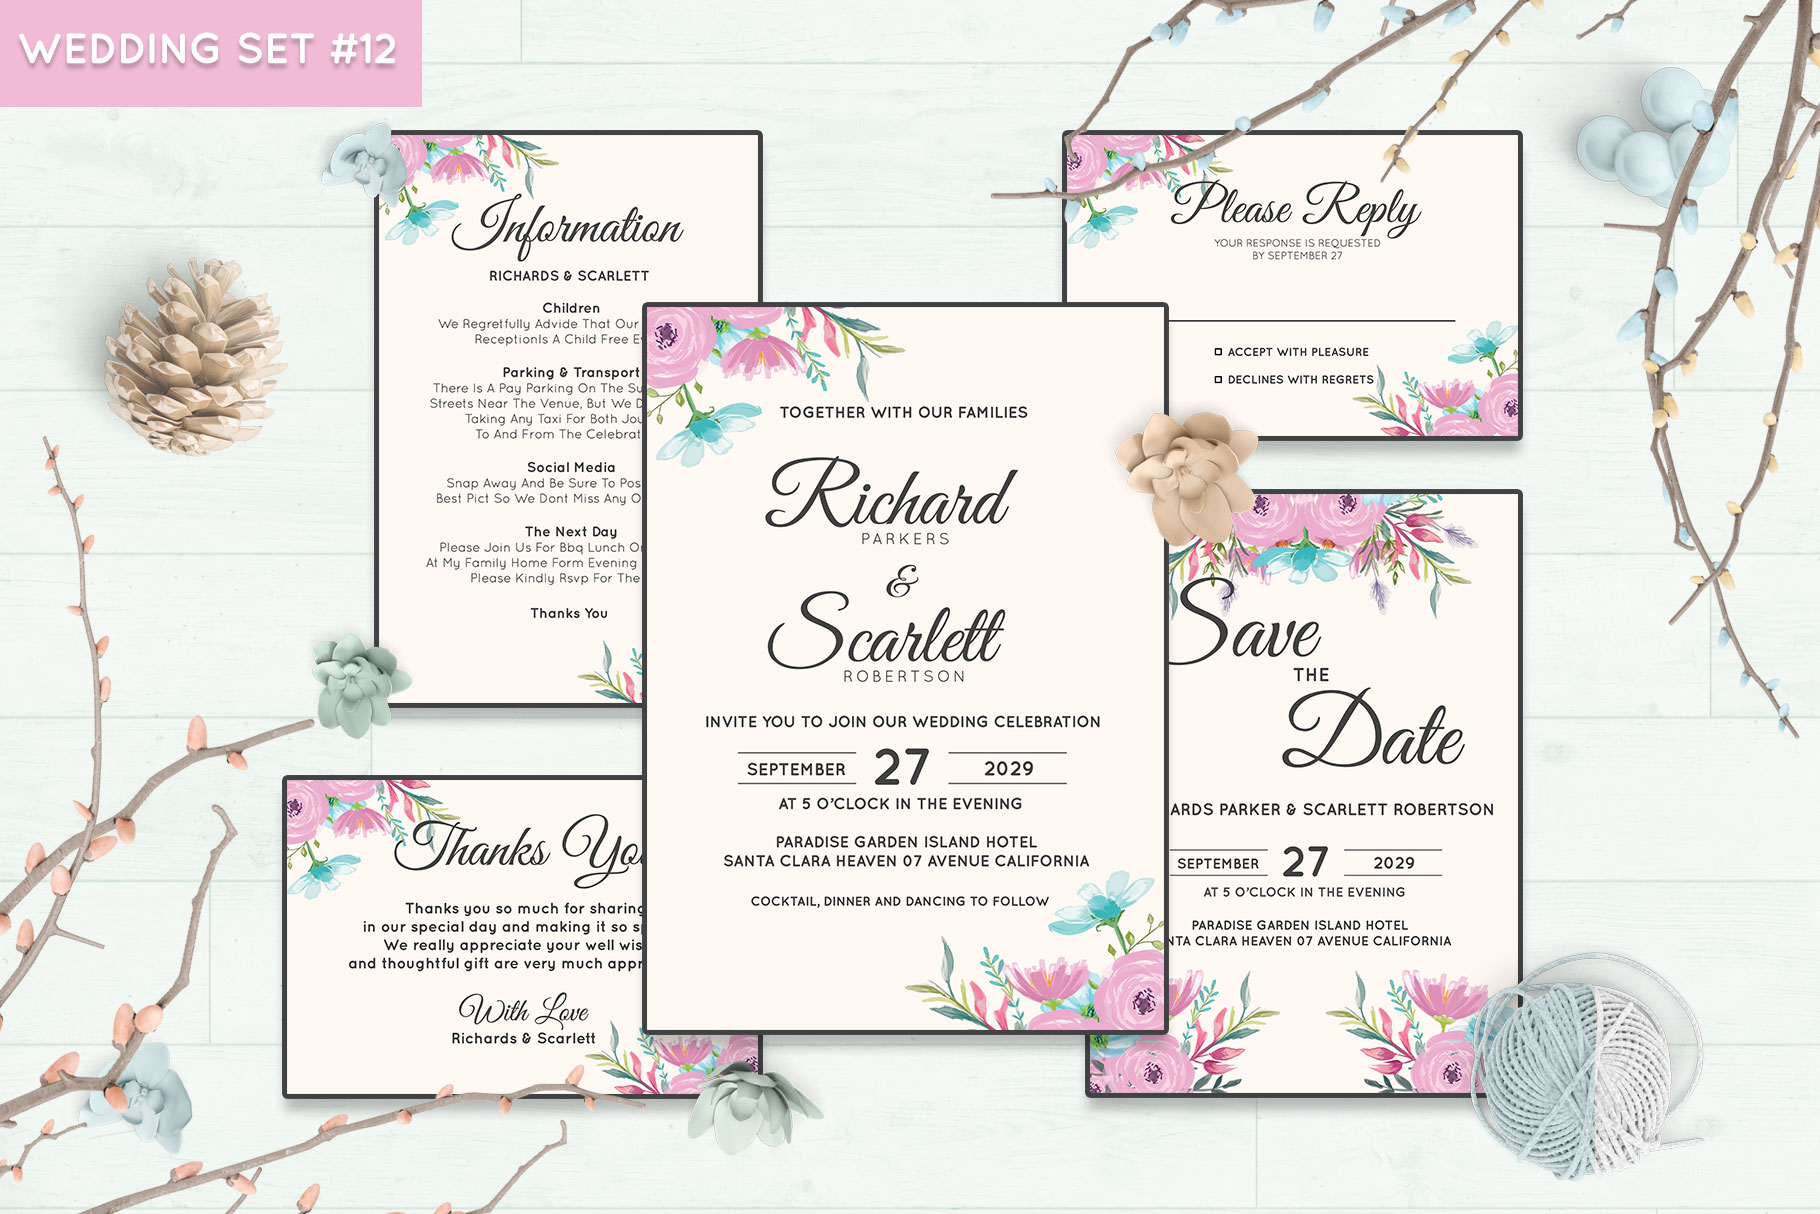 Download Free Wedding Invitation Set 12 Floral Style Graphic By Kagunan Arts for Cricut Explore, Silhouette and other cutting machines.